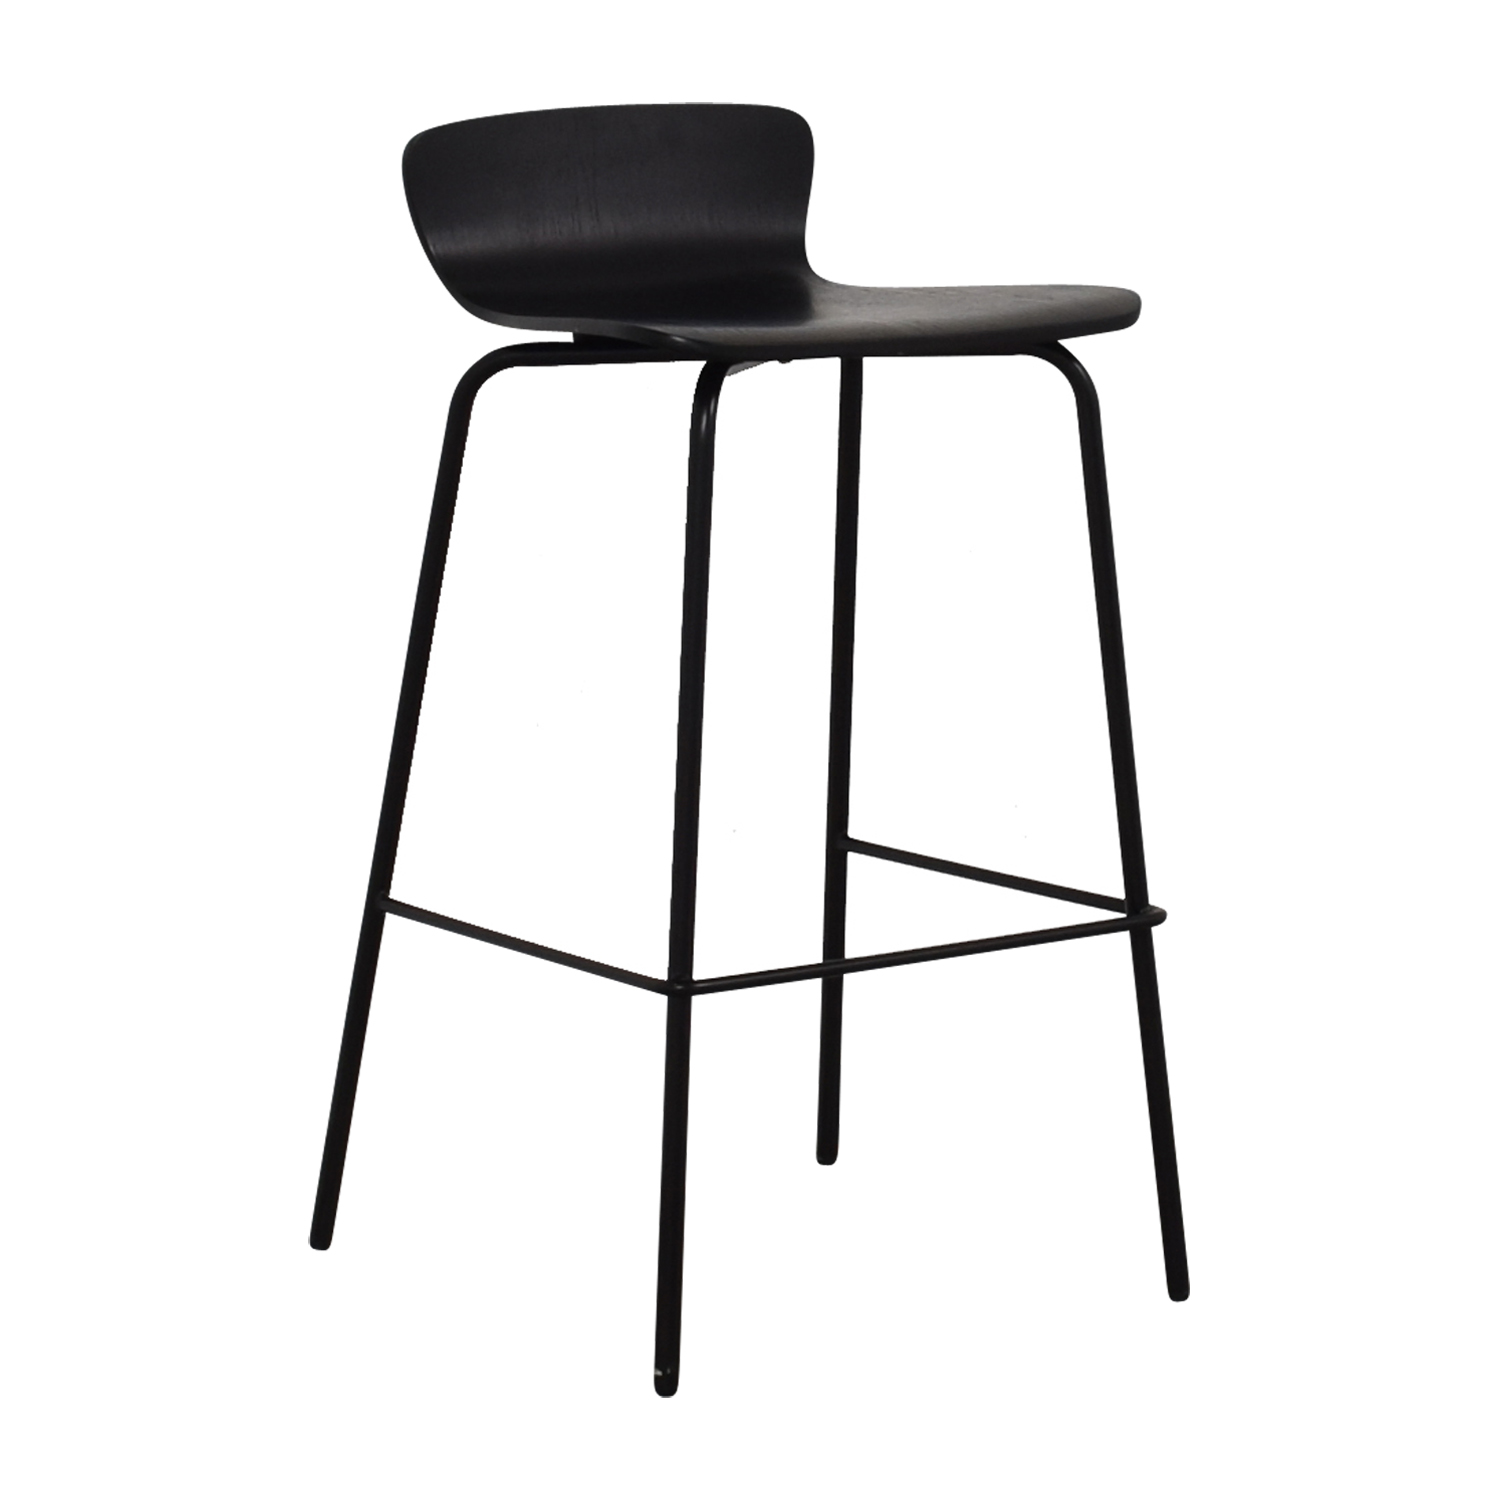 Stool Chair 90 Off Crate Barrel Crate Barrel Felix Black Counter Bar Stool Chairs